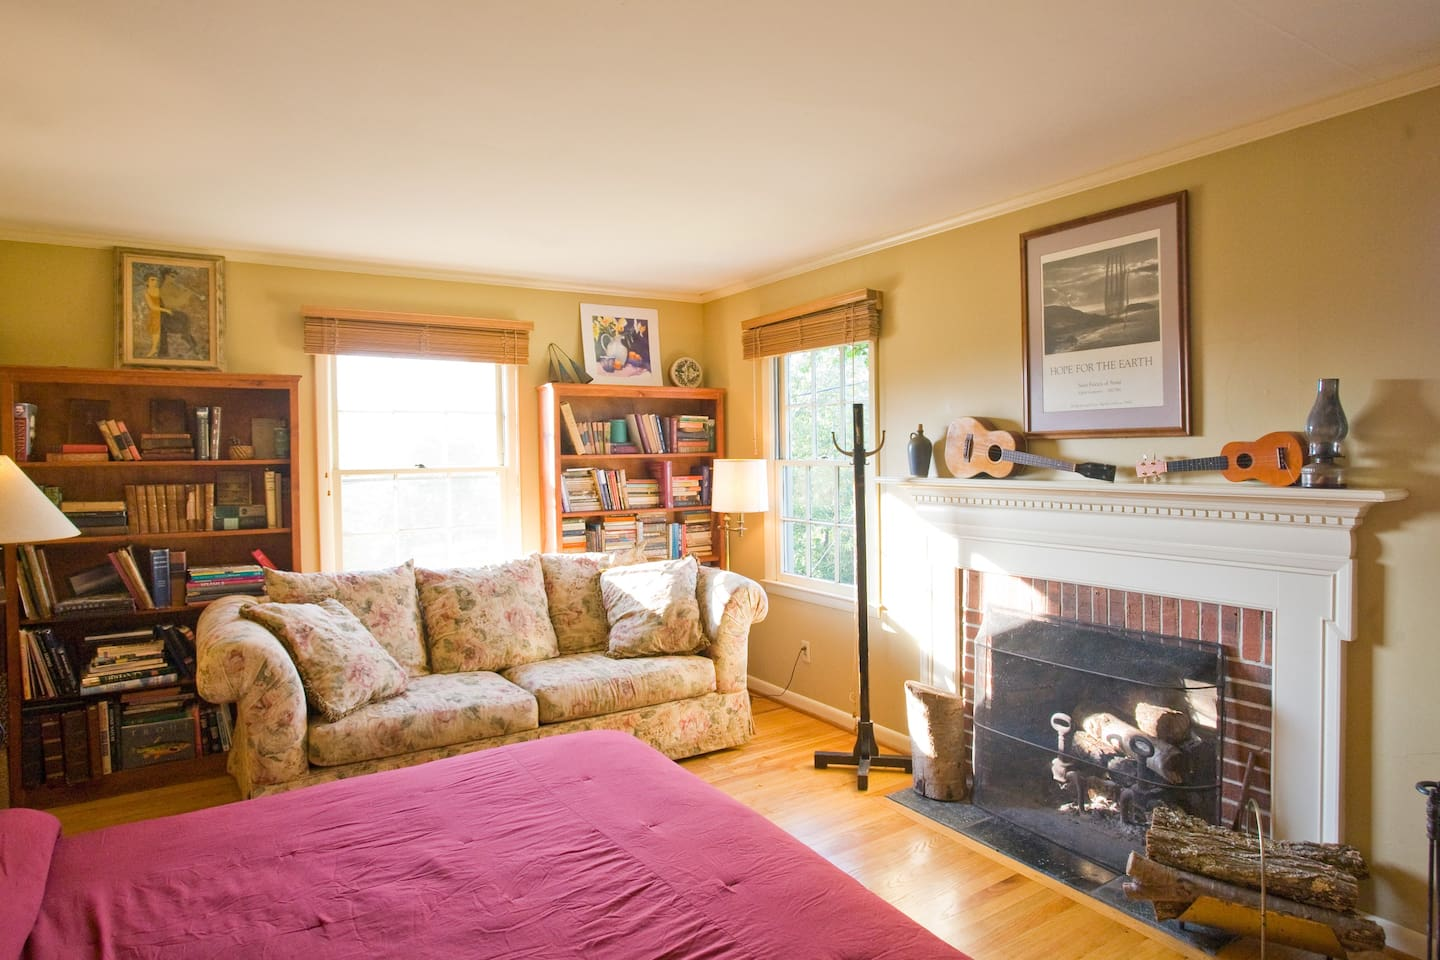 The room has lots of natural light, but for sleep or for a den-like feel . . .